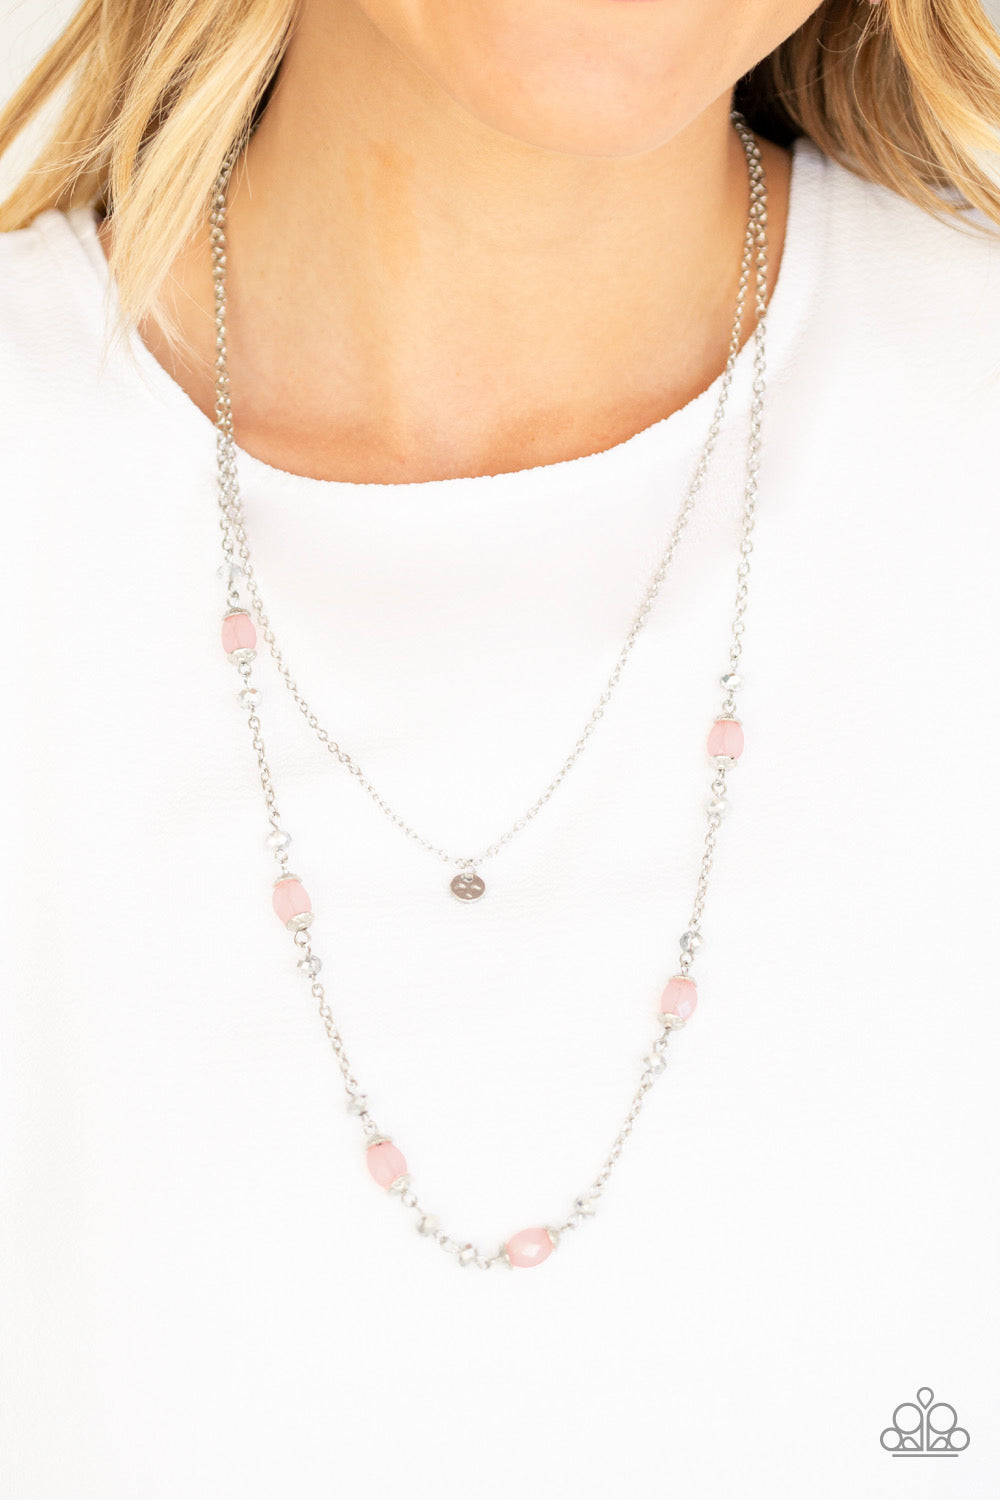 Paparazzi Irresistibly Iridescent - Pink Necklace